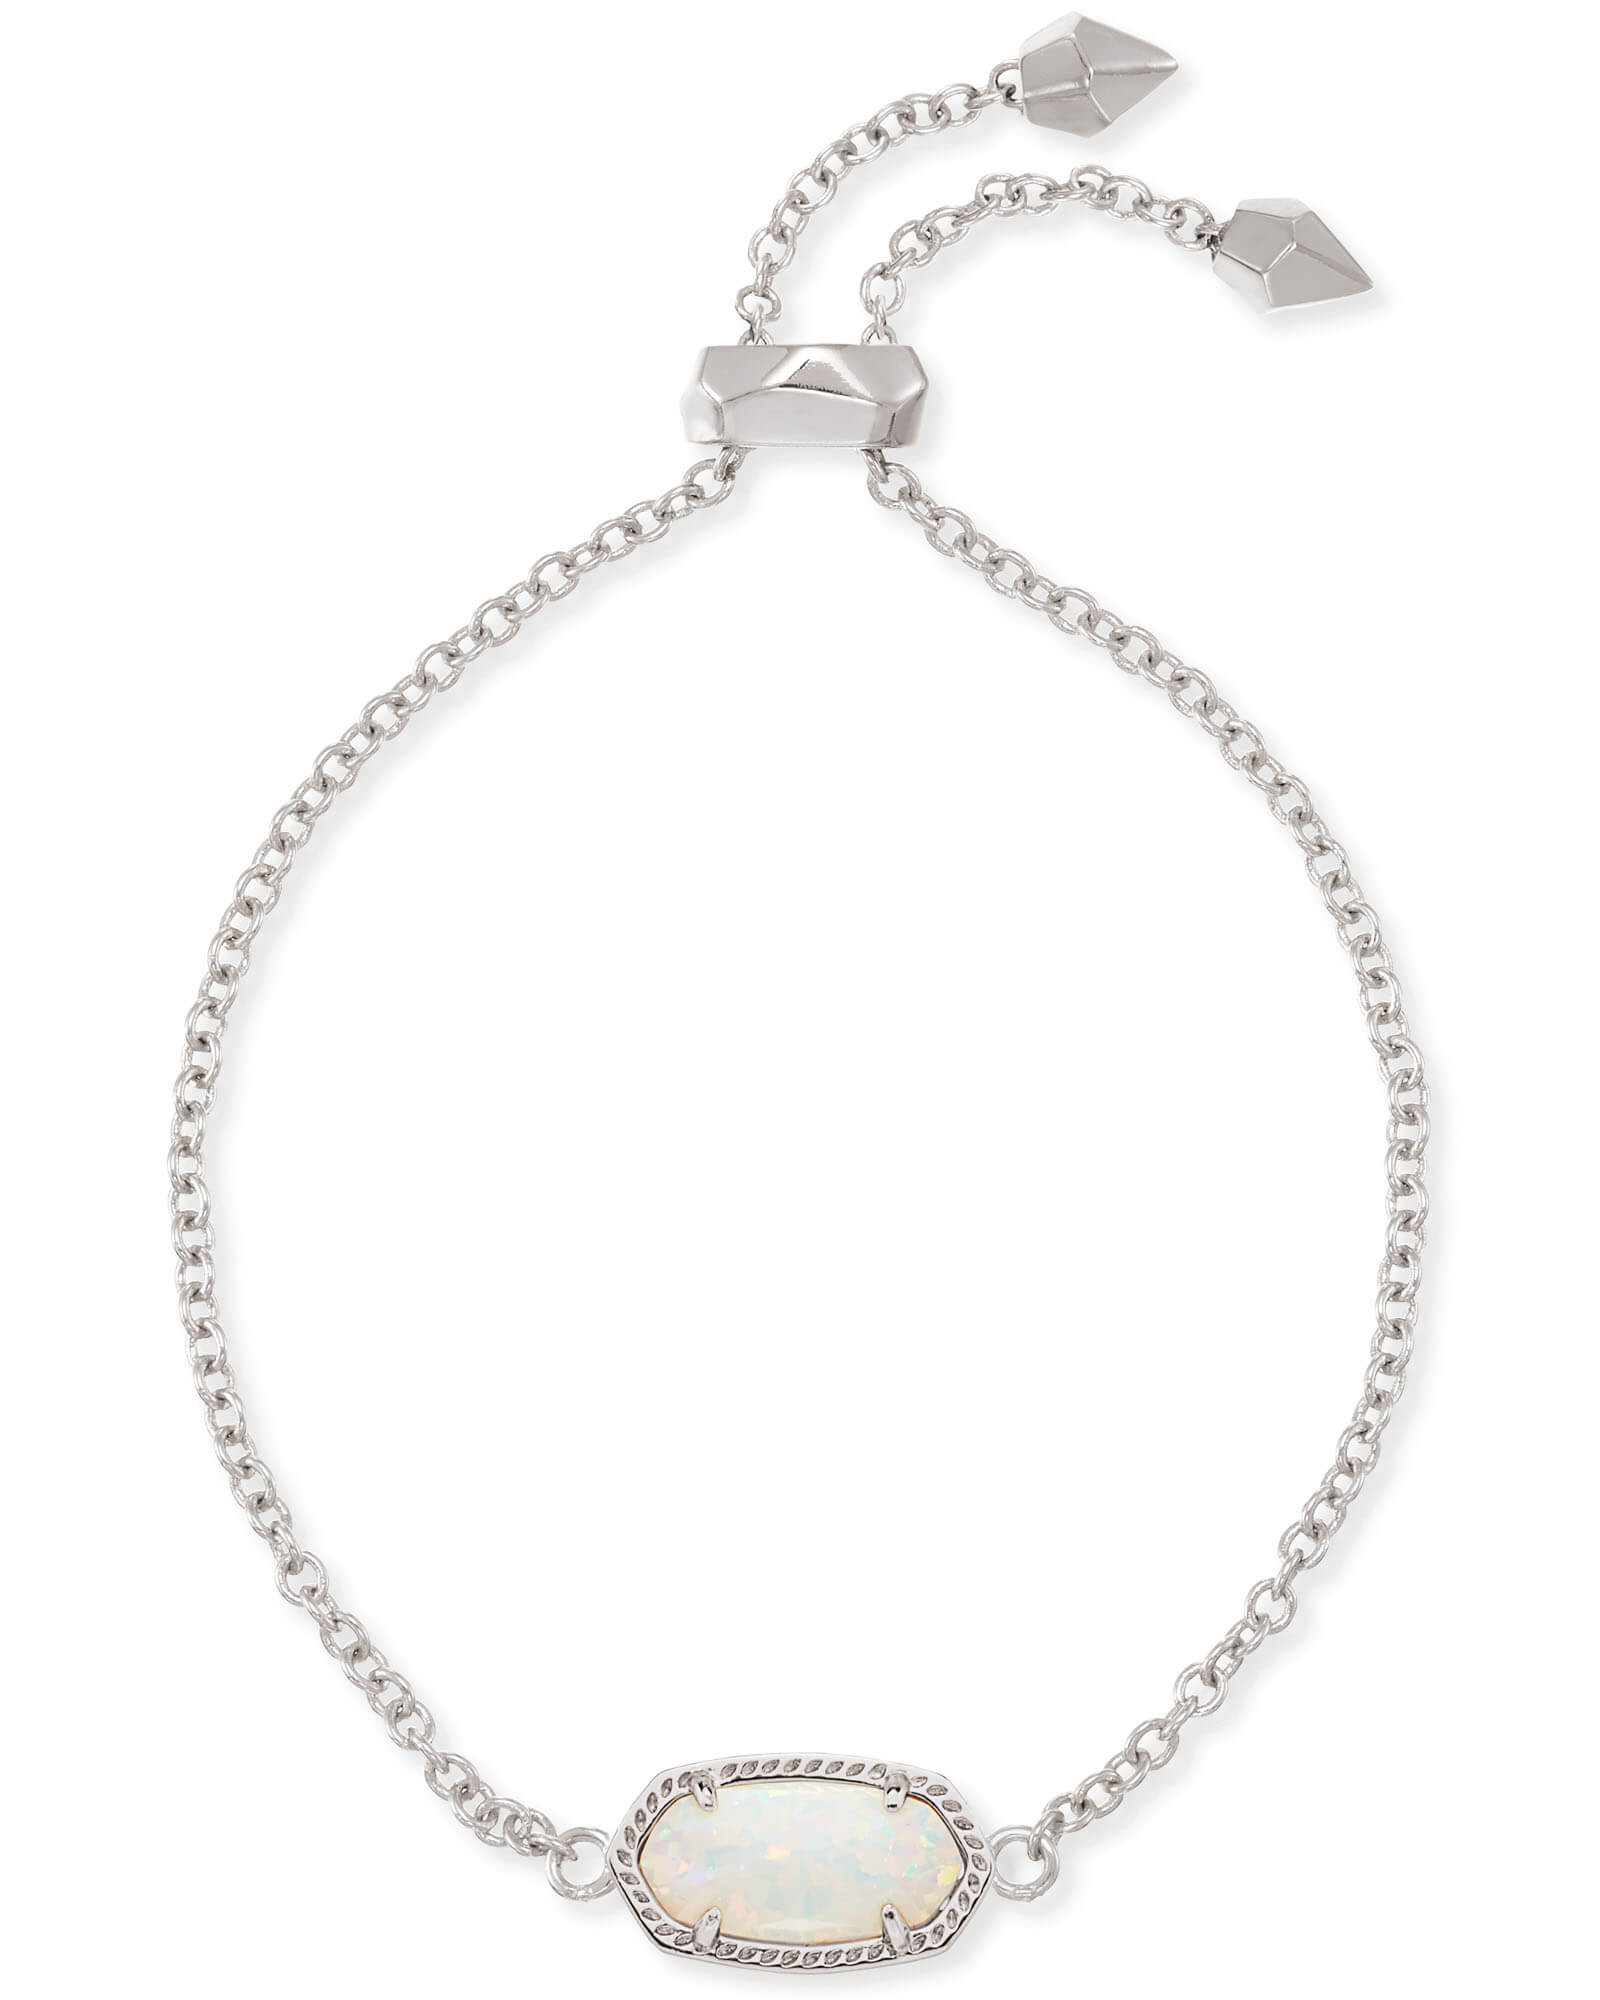 Elaina Silver Adjustable Chain Bracelet in White Kyocera Opal